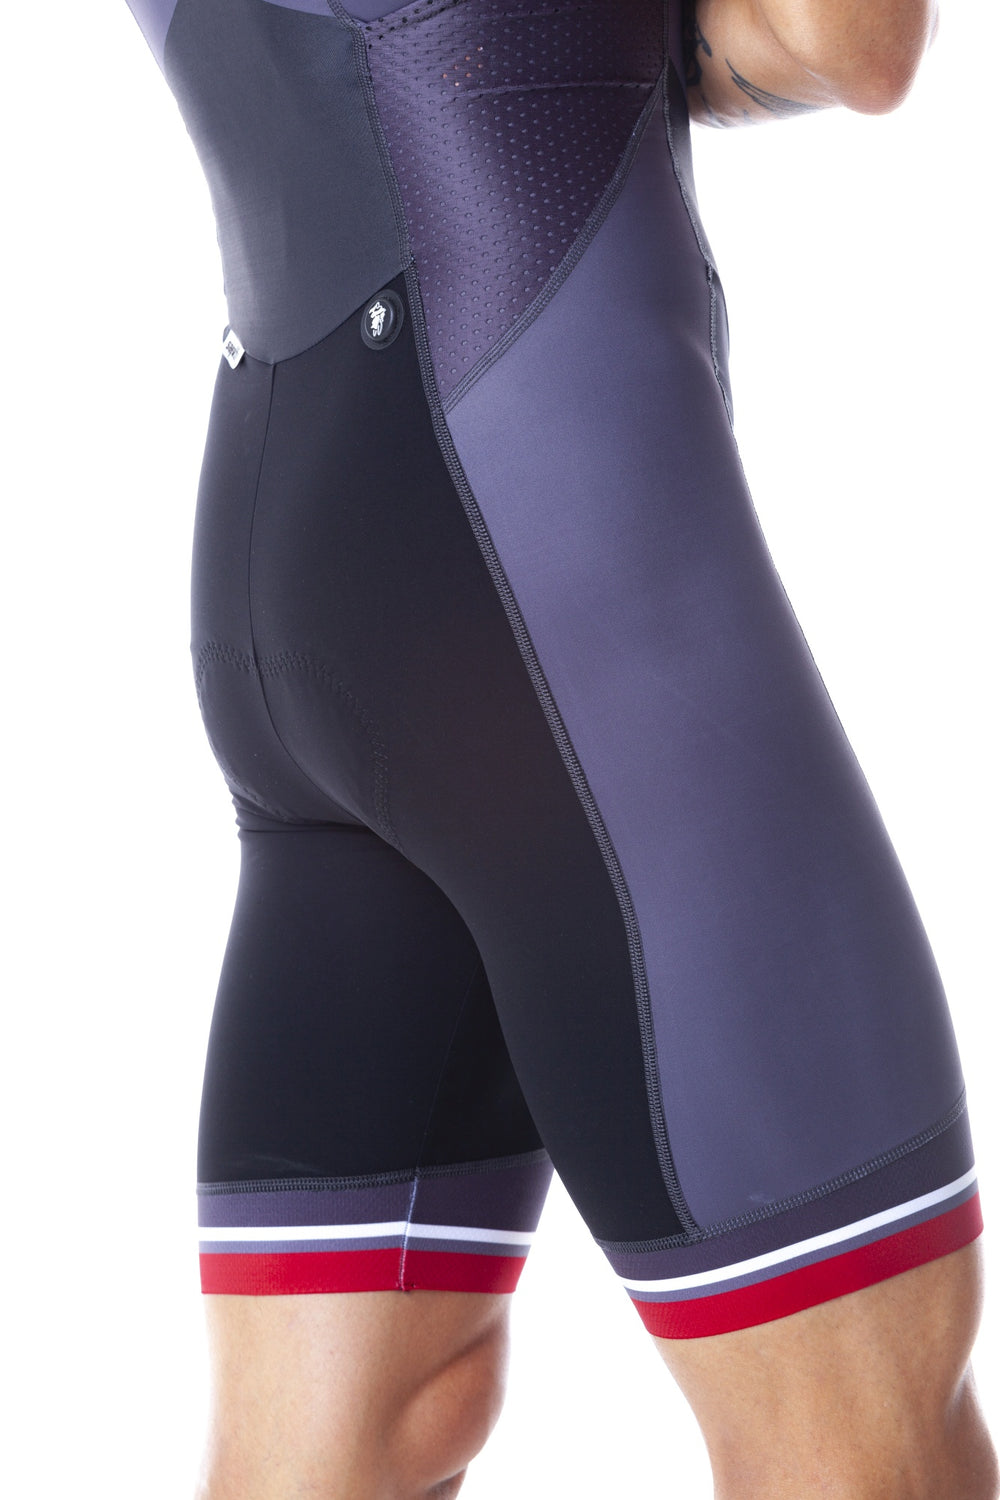 Pre-order Monument II - Asfalto - Triathlon Skinsuit. Men